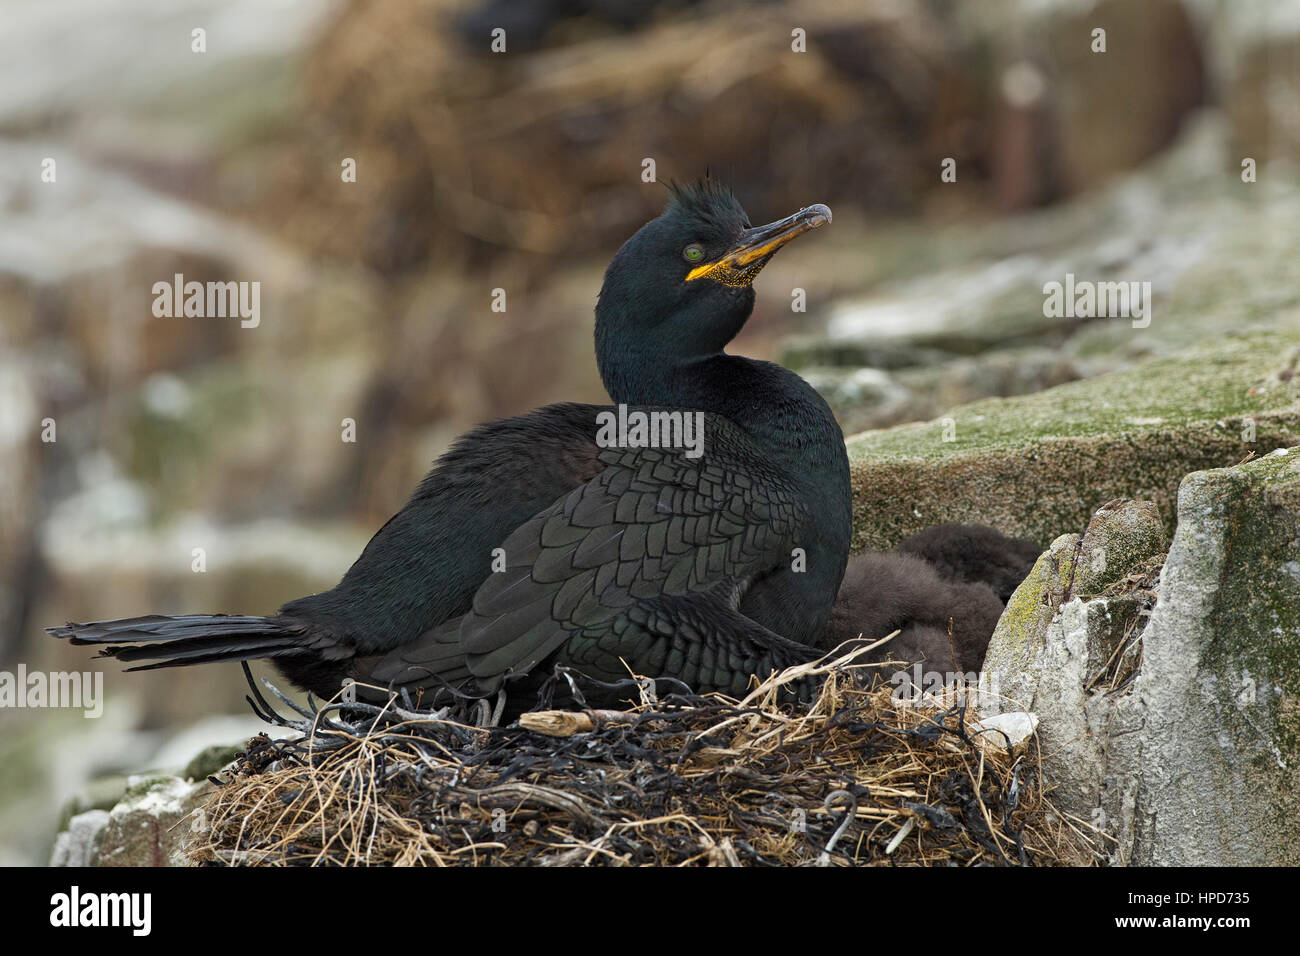 Shag sitting on newly hatched chicks in a nest - Stock Image